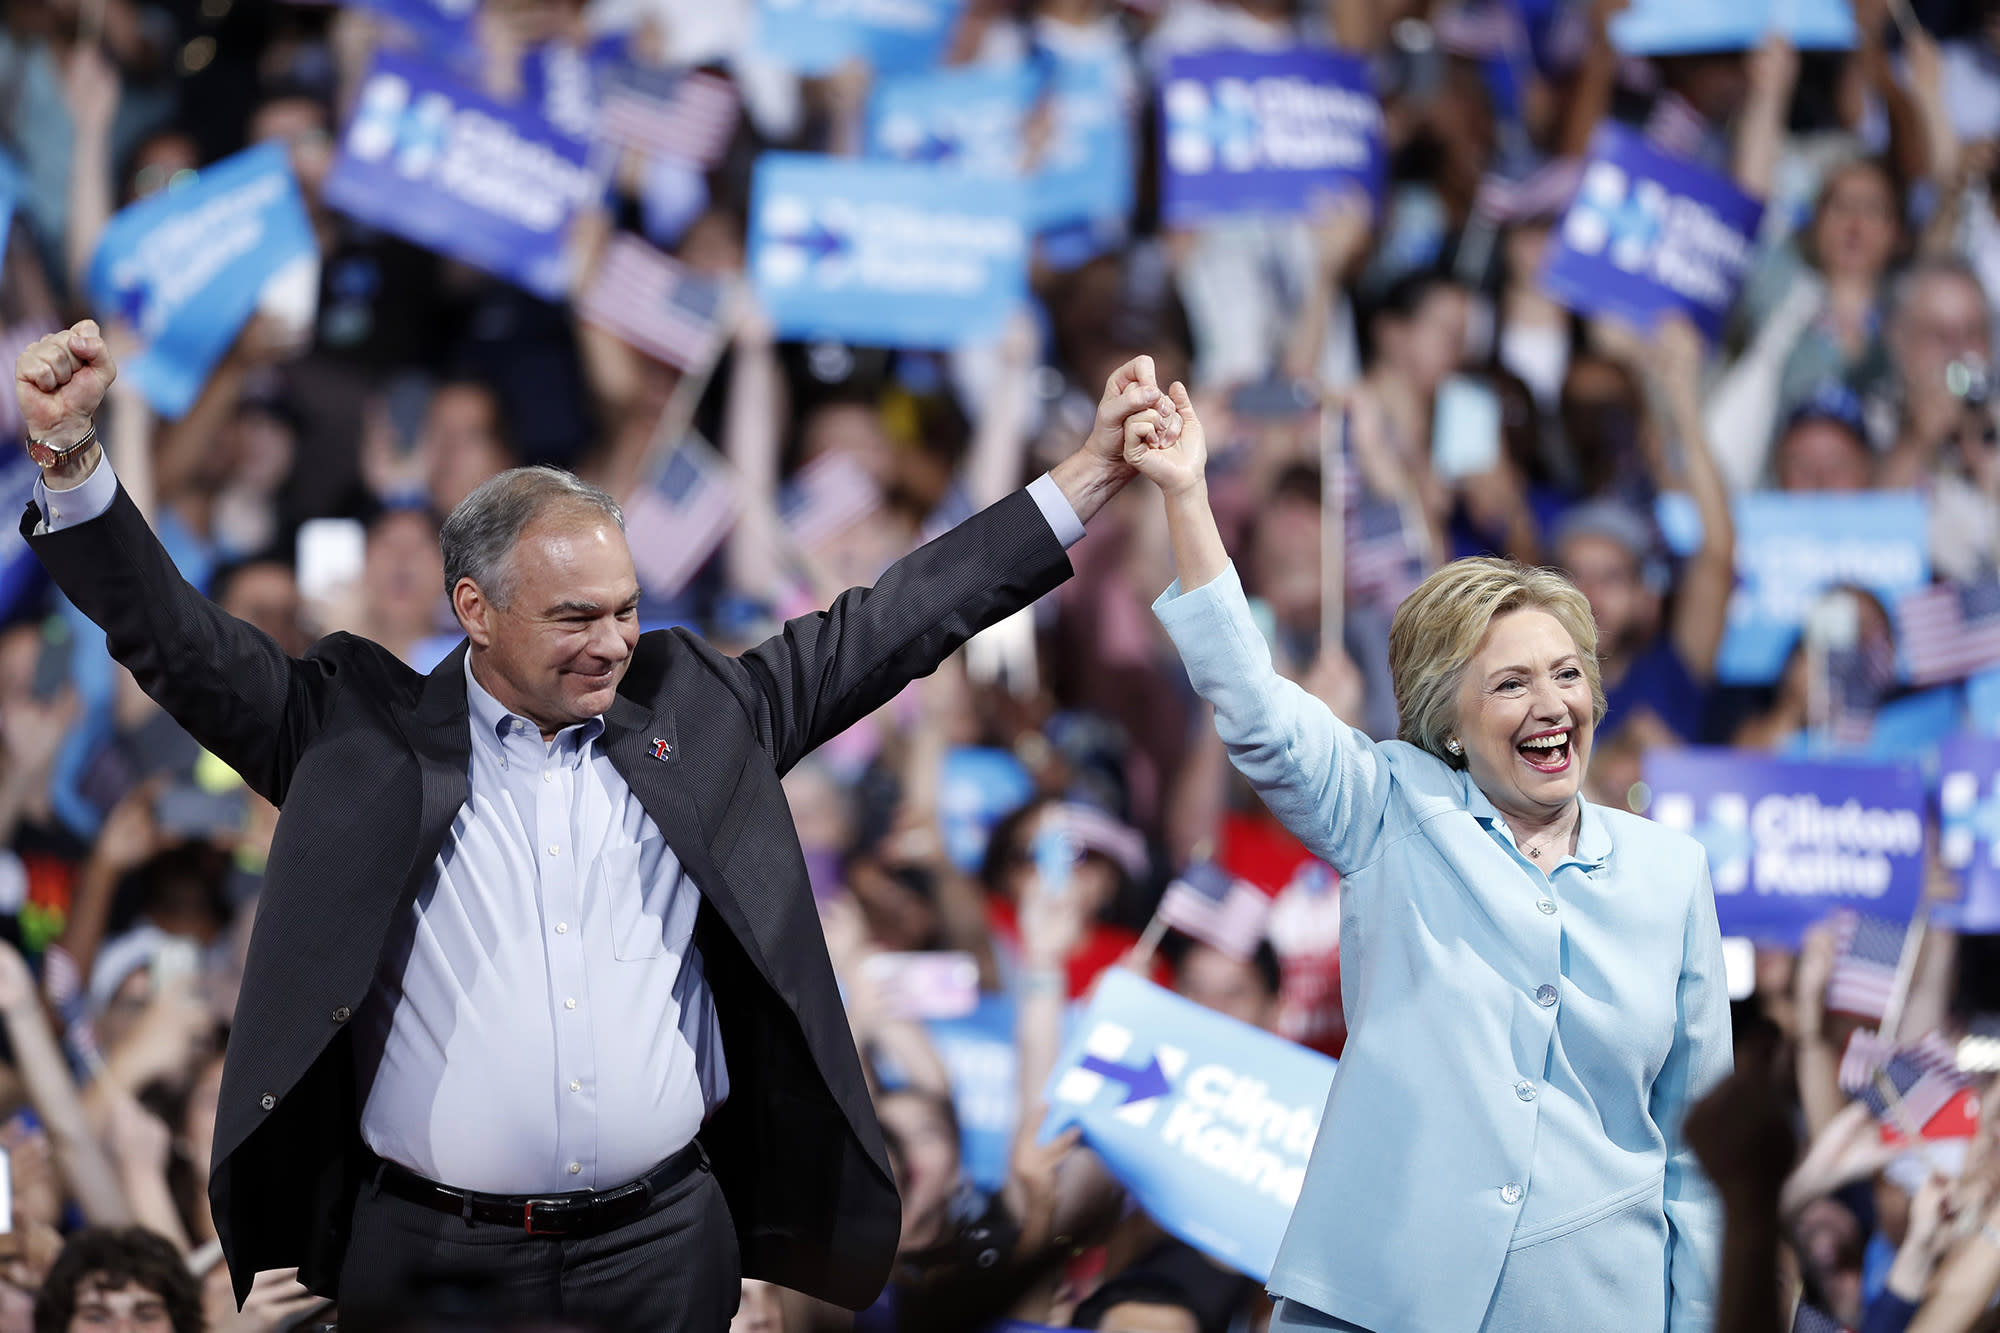 Hillary Clinton and Sen. Tim Kaine of Virginia. (Photo: Mary Altaffer/AP)